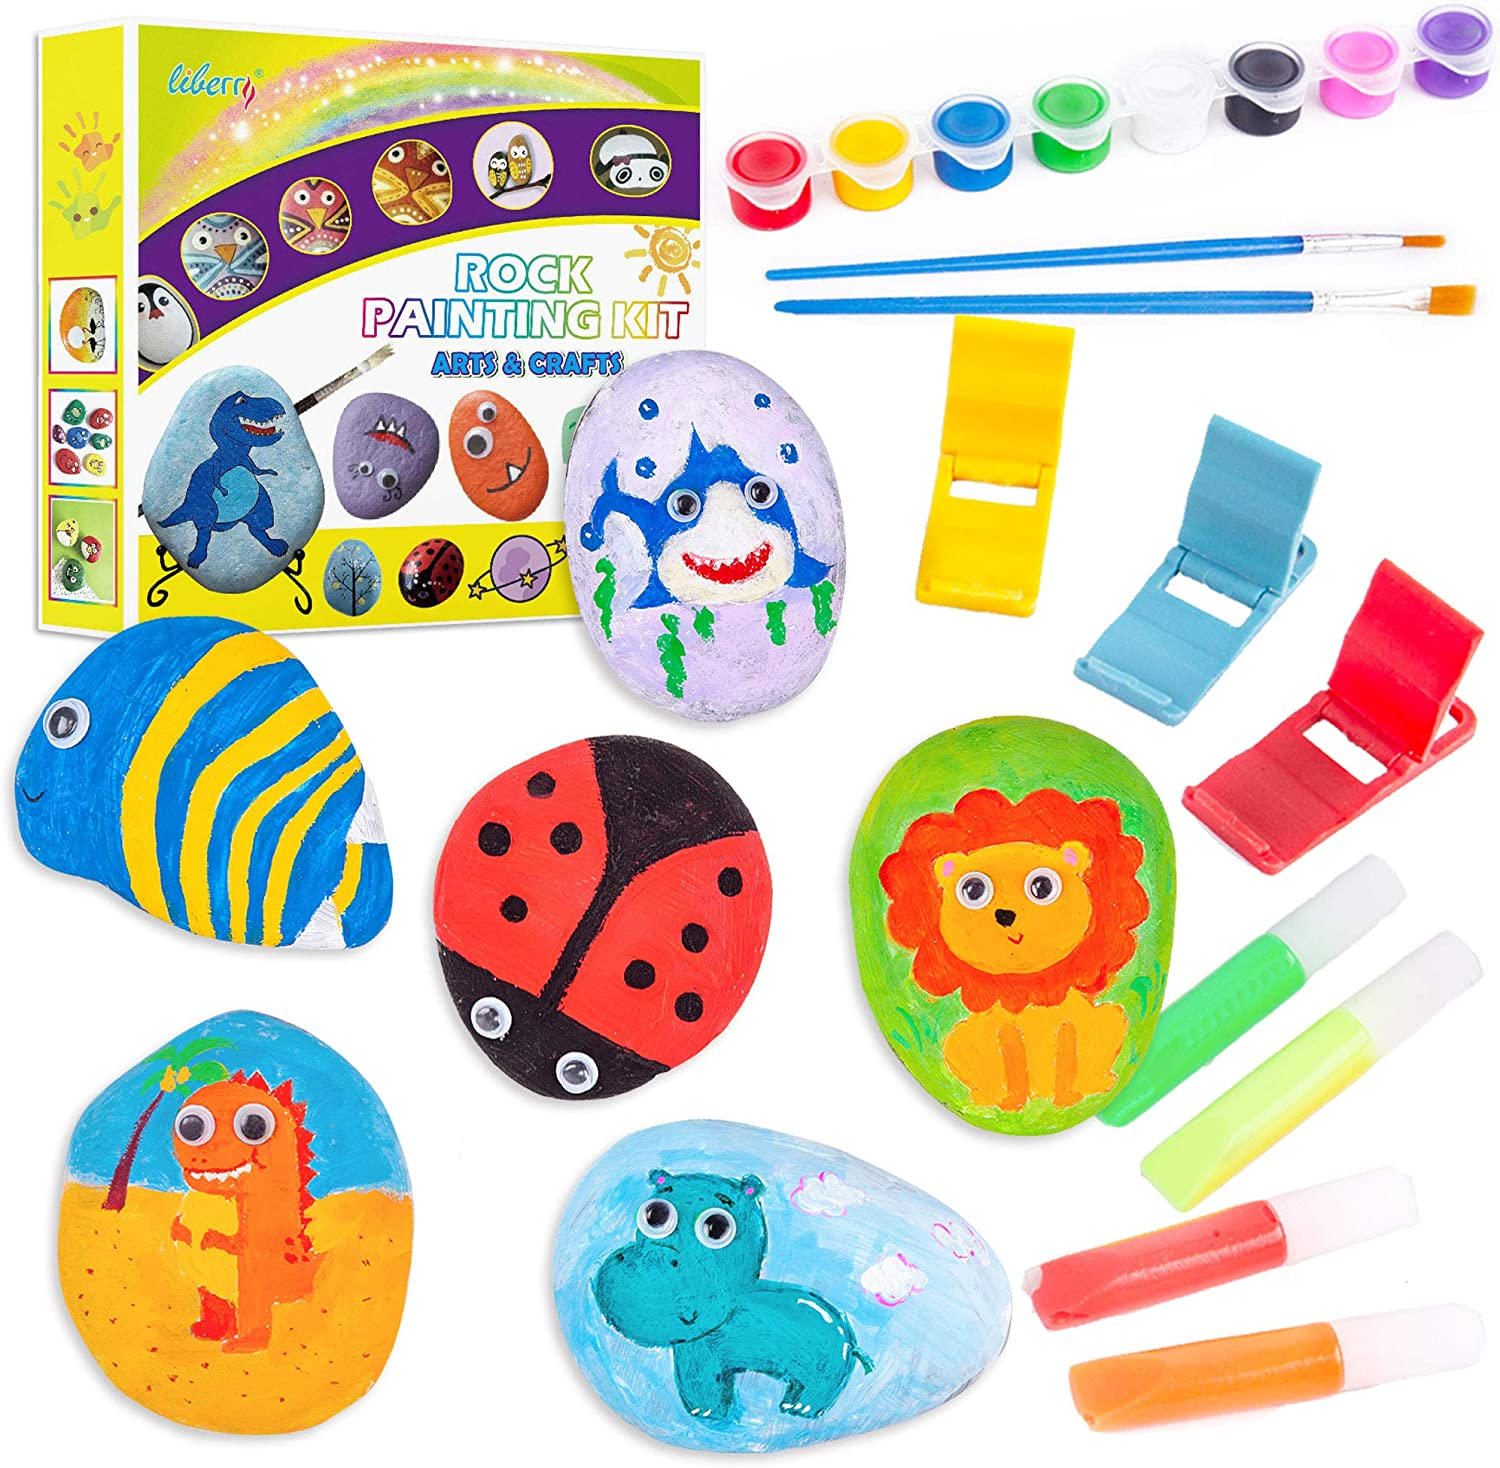 Basic Painting Rocks Set for Kids Arts and Crafts Kit for Girls /& Boys Ages 4-12 Rock Painting Kit